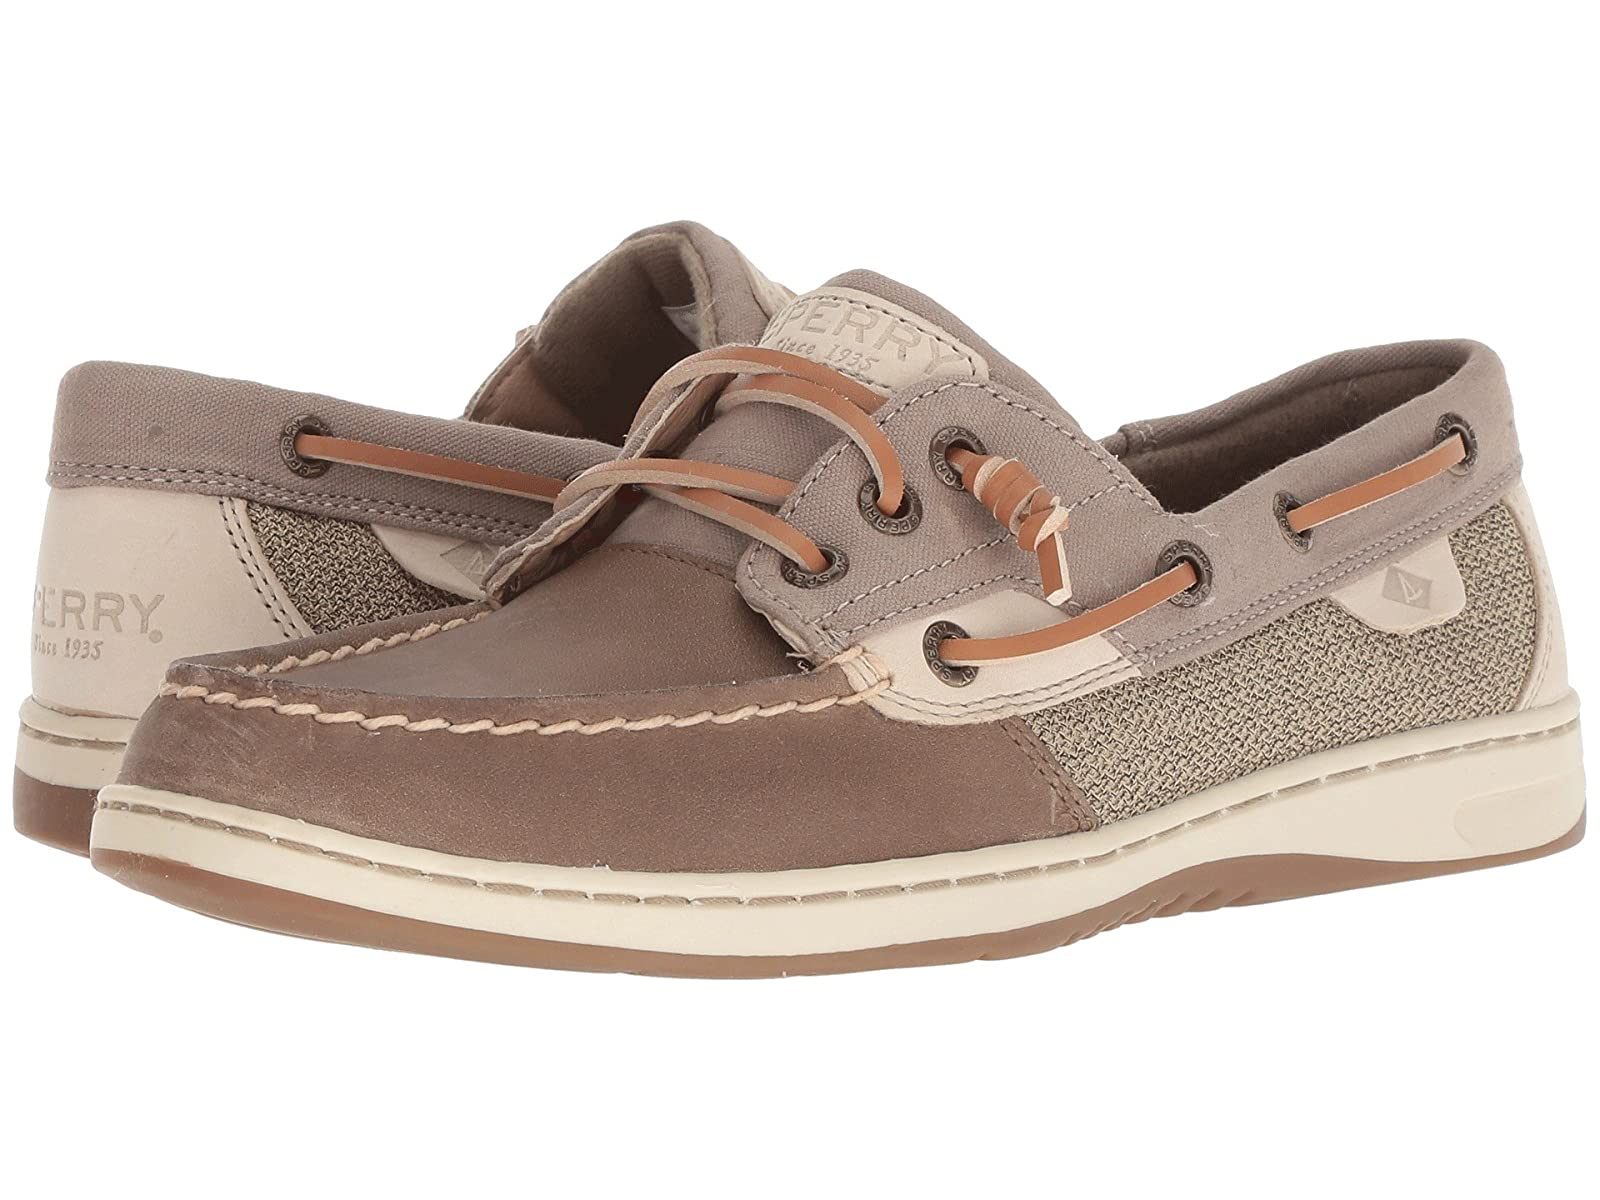 Sperry Rosefish Slub CollarCheap and distinctive eye-catching shoes